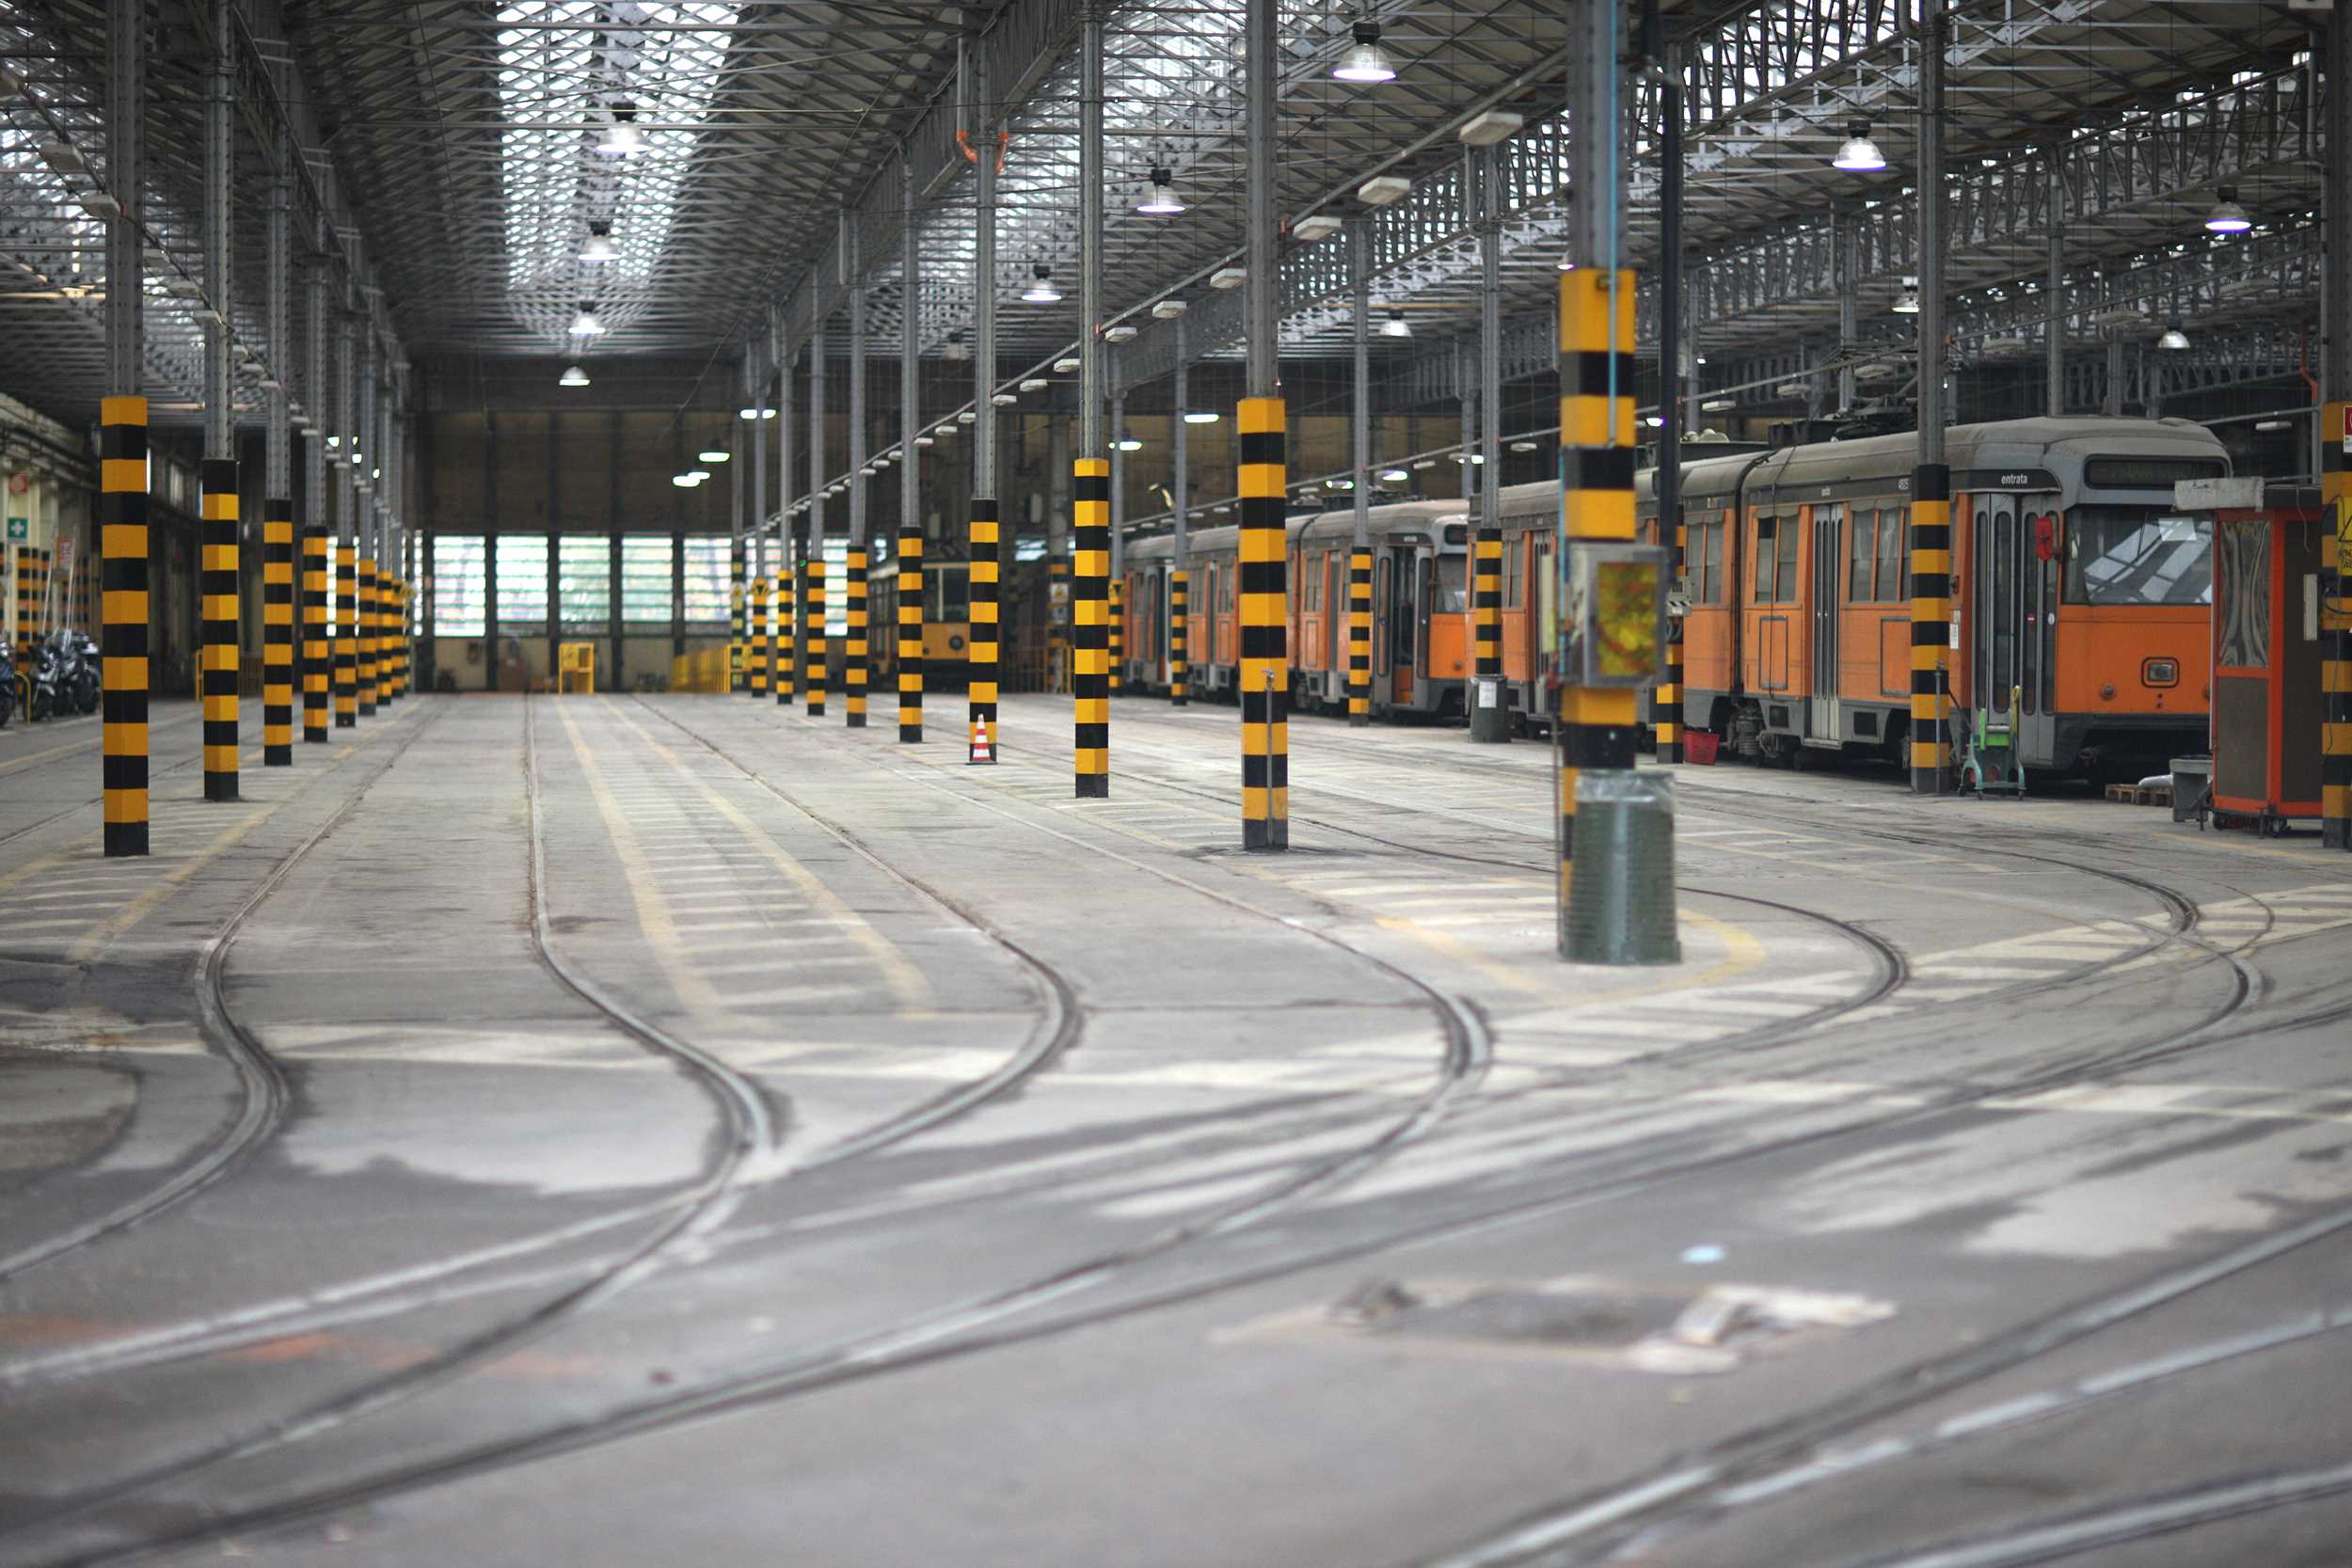 Depot control system – Firstclass safety and controls